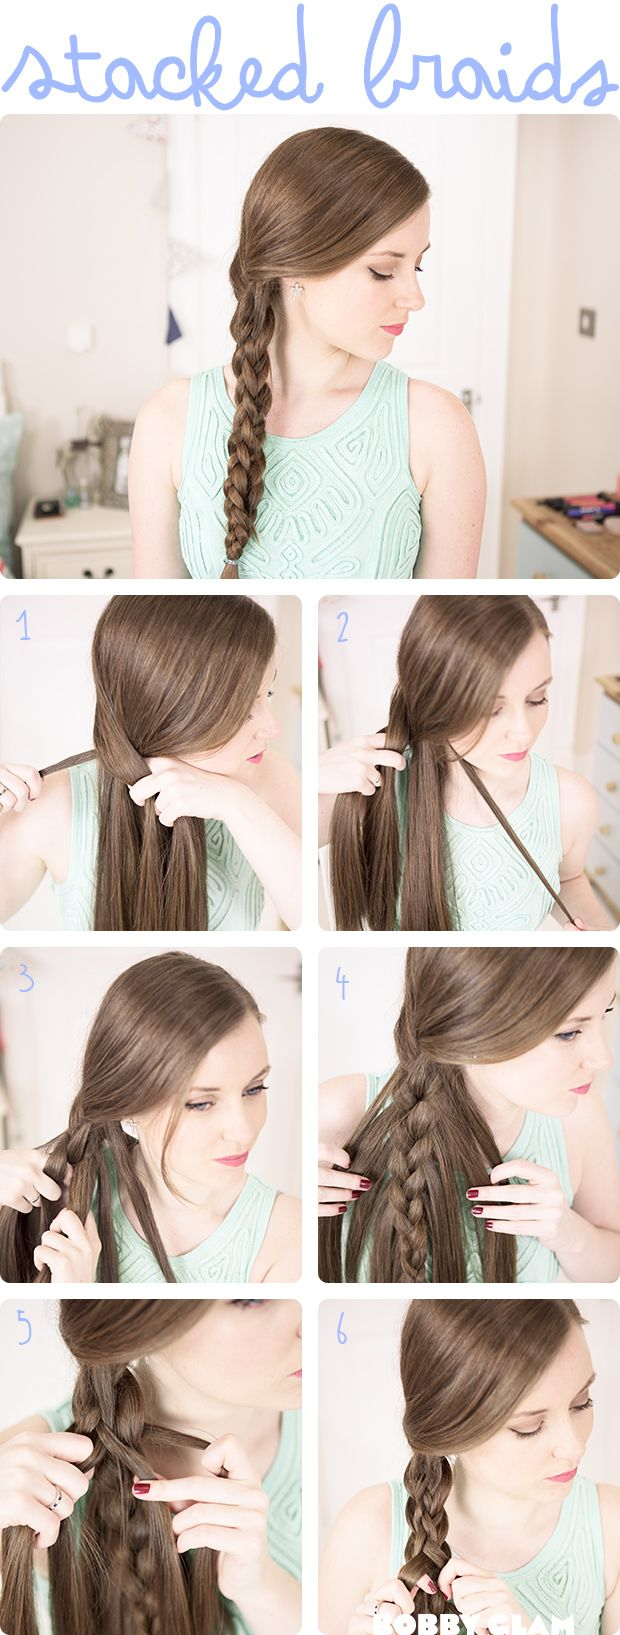 Stacked braids tutorial. I have been loving this look lately.